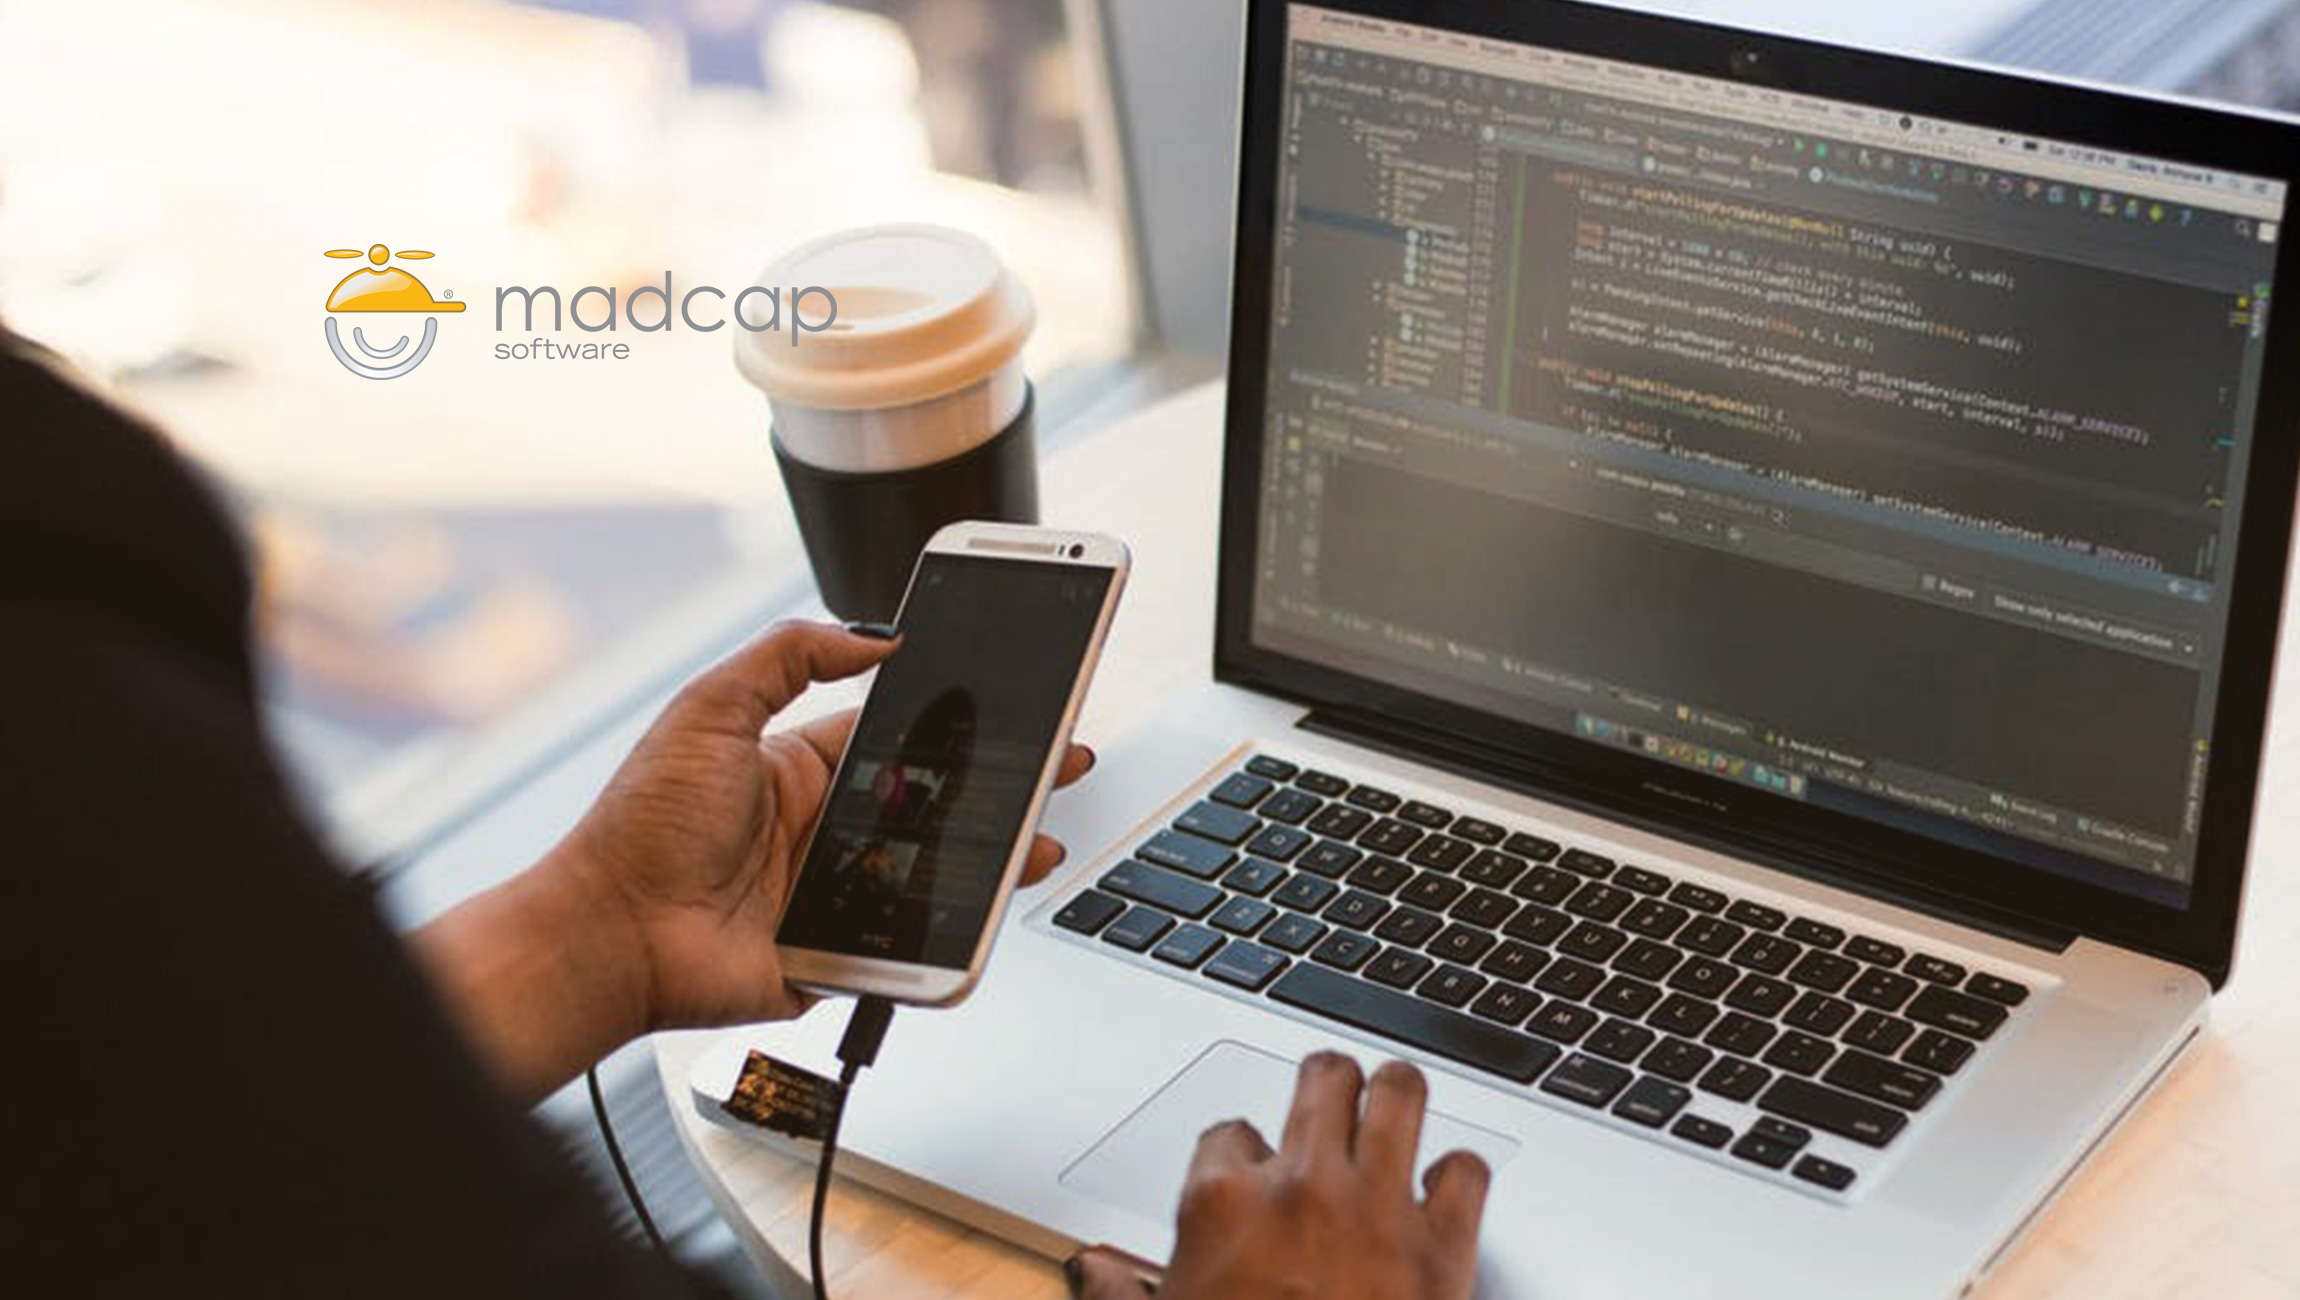 MadCap Software Introduces Industry-First Authoring for Chatbots and AI with Newest Releases of MadCap Central and MadCap Flare